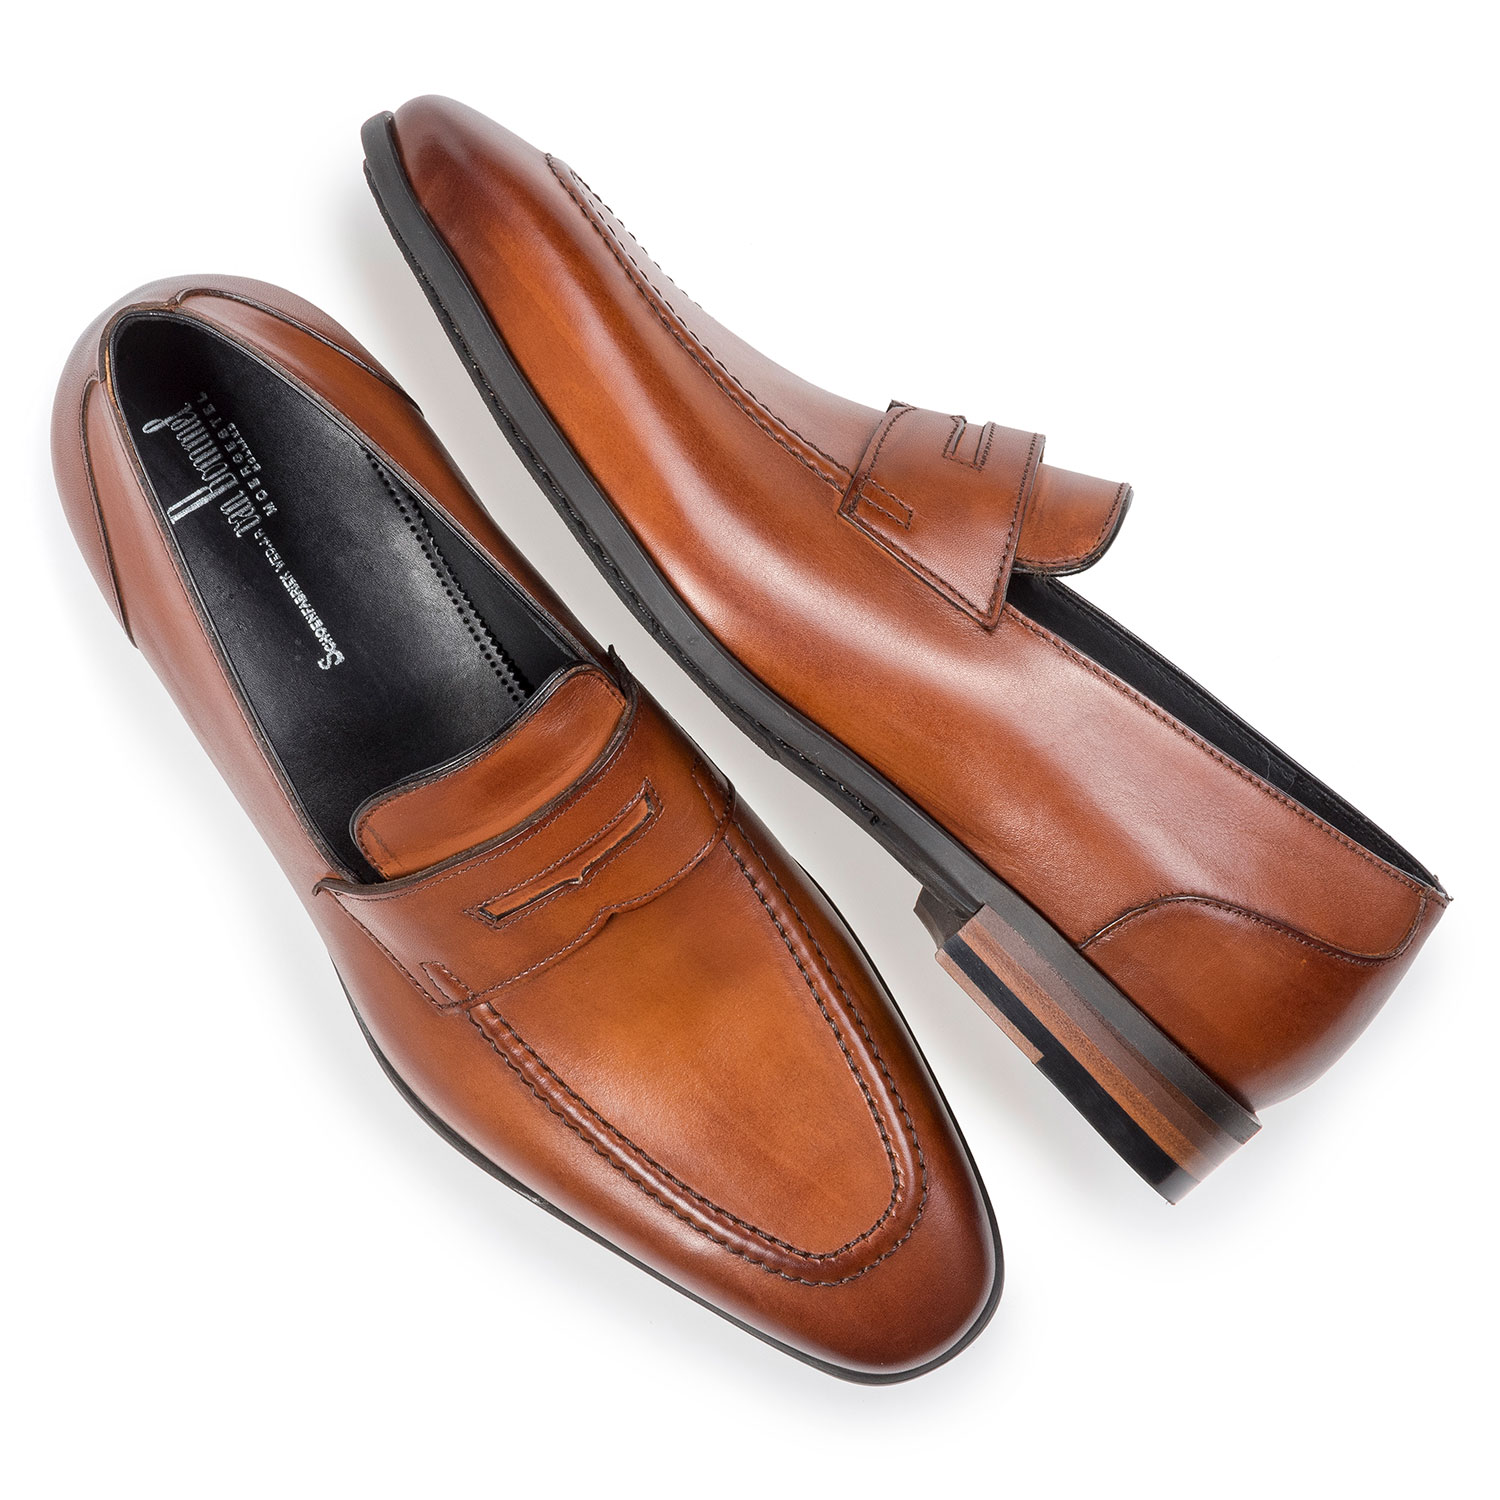 11129/03 - Dark cognac-coloured calf leather loafer